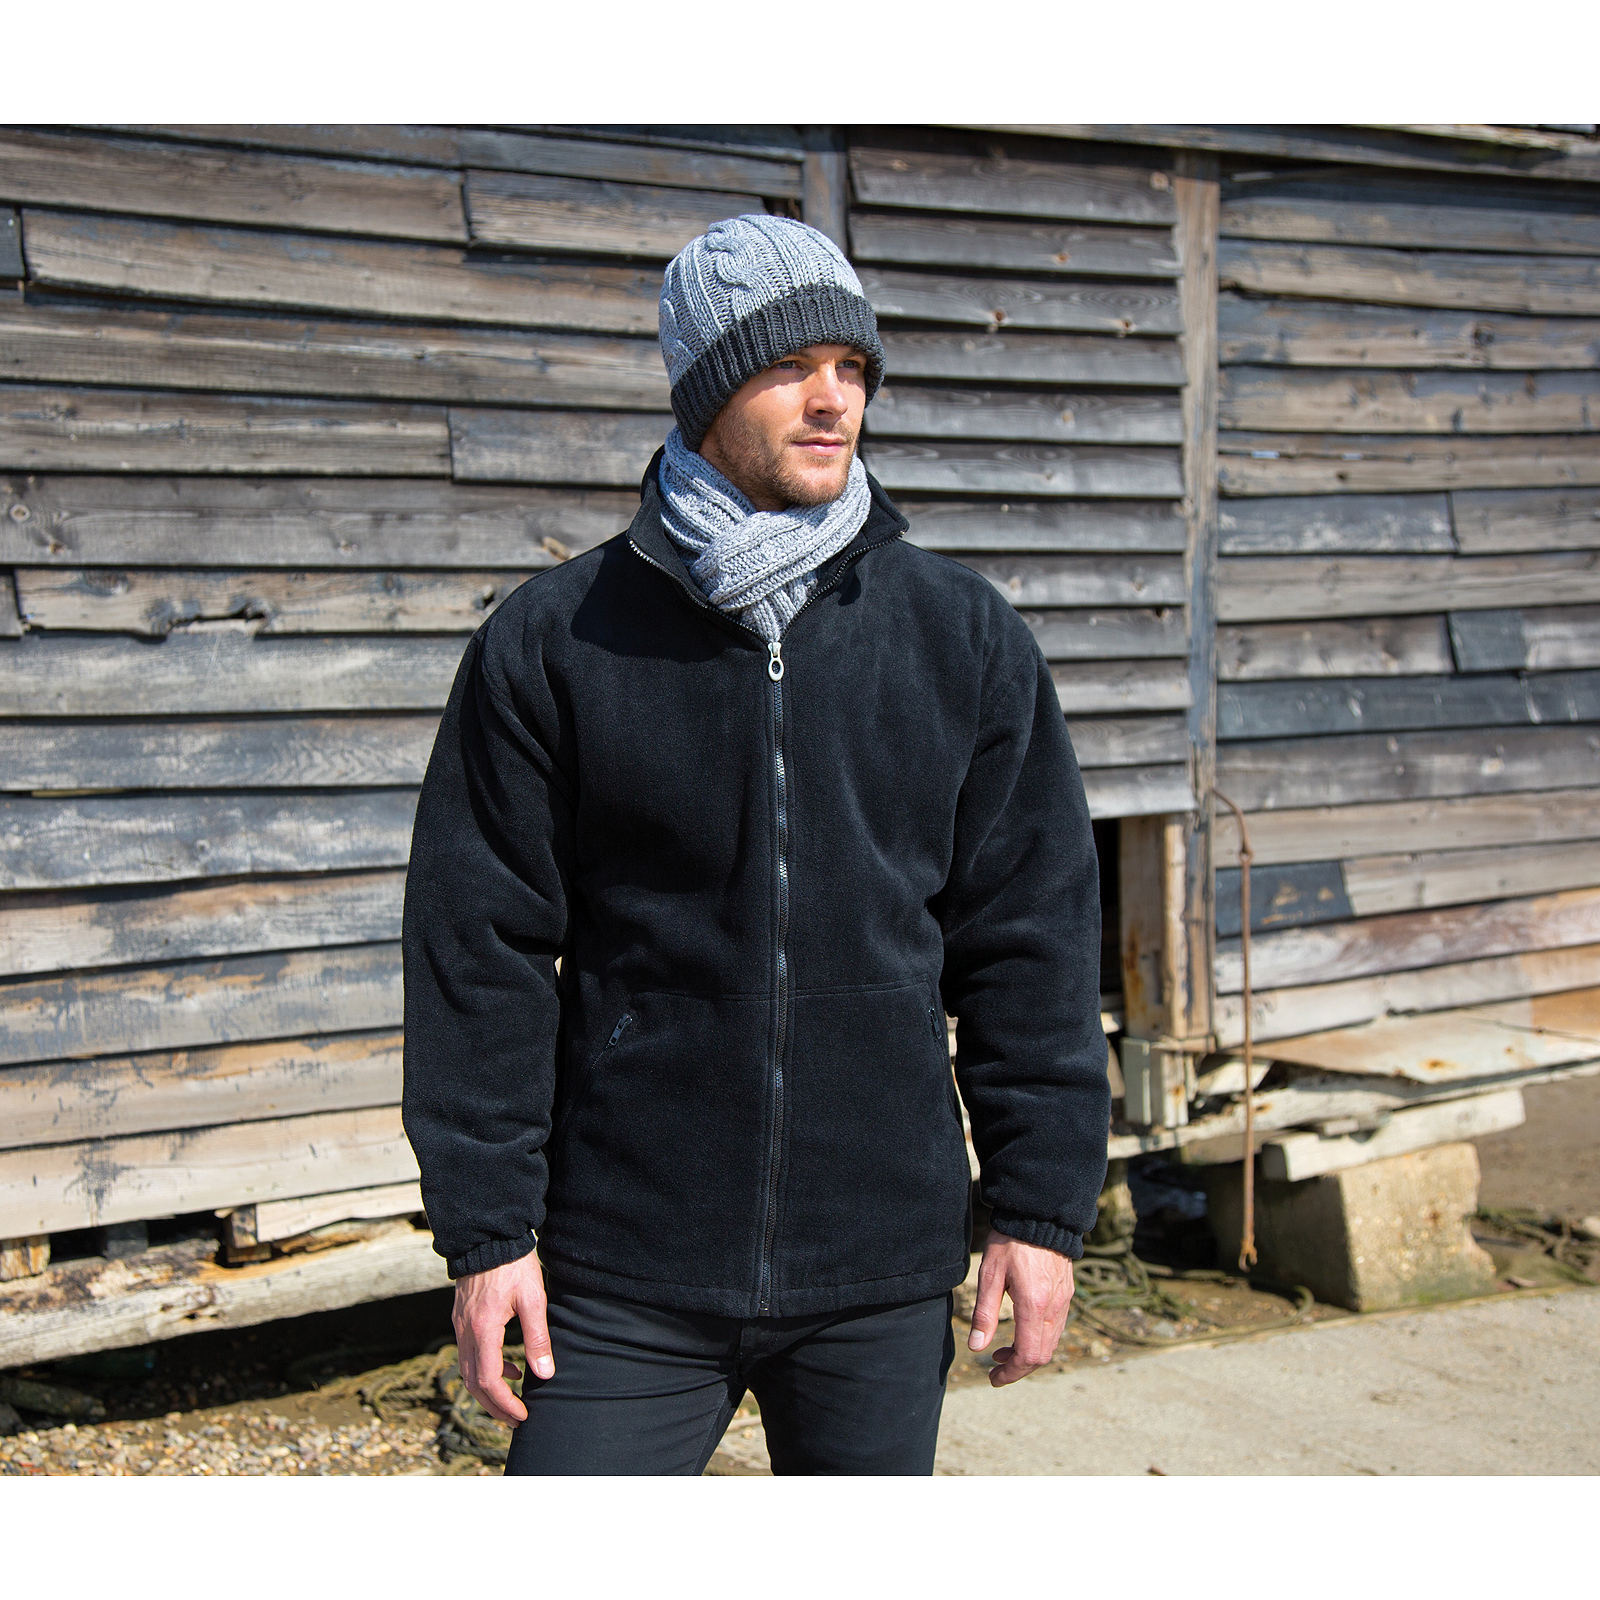 6e5c25751 Details about Result Core Polartherm Winter Cold Weather Fleece Jacket Mens  Outdoor Coat New